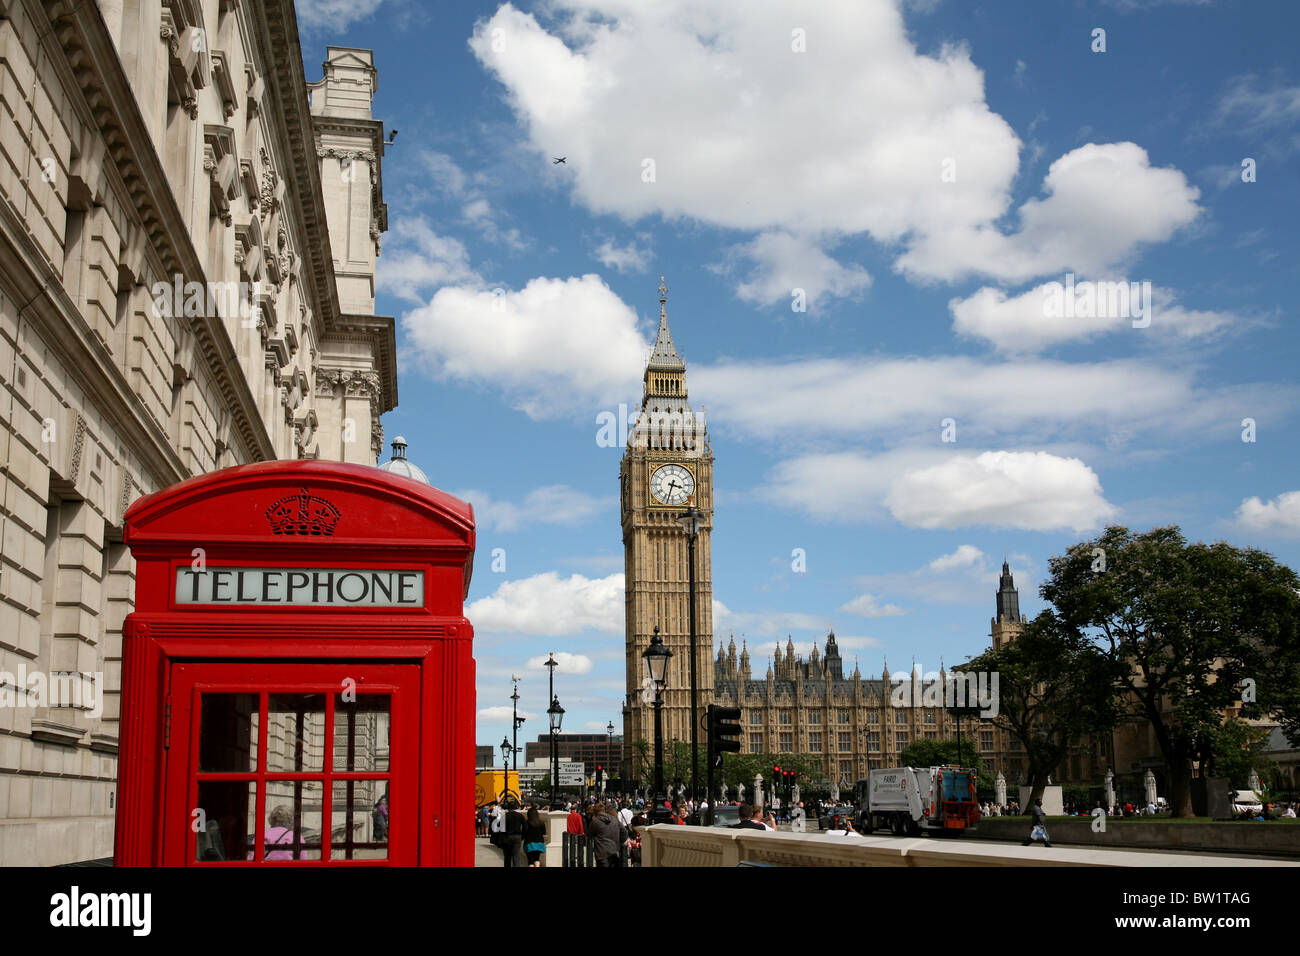 London red telephone box and Big Ben - Stock Image